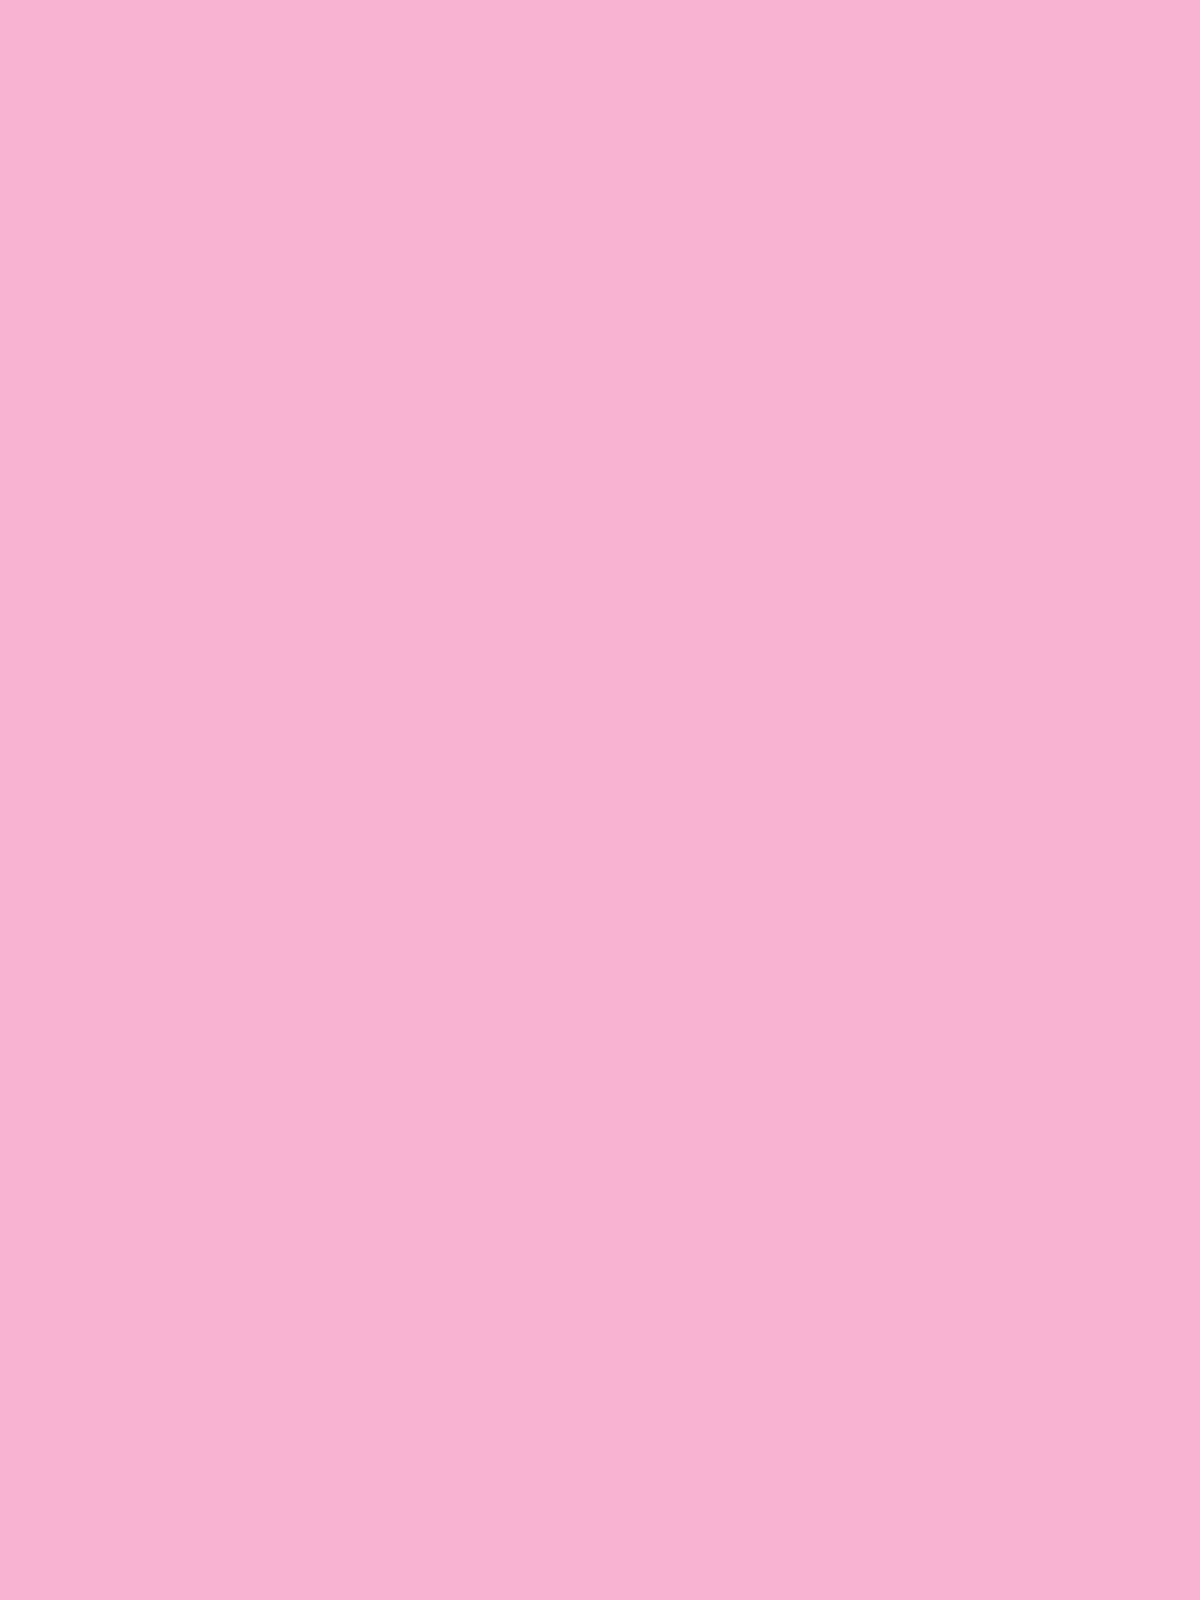 Baby Pink Wallpaper (60 Wallpapers) – Wallpapers 4k